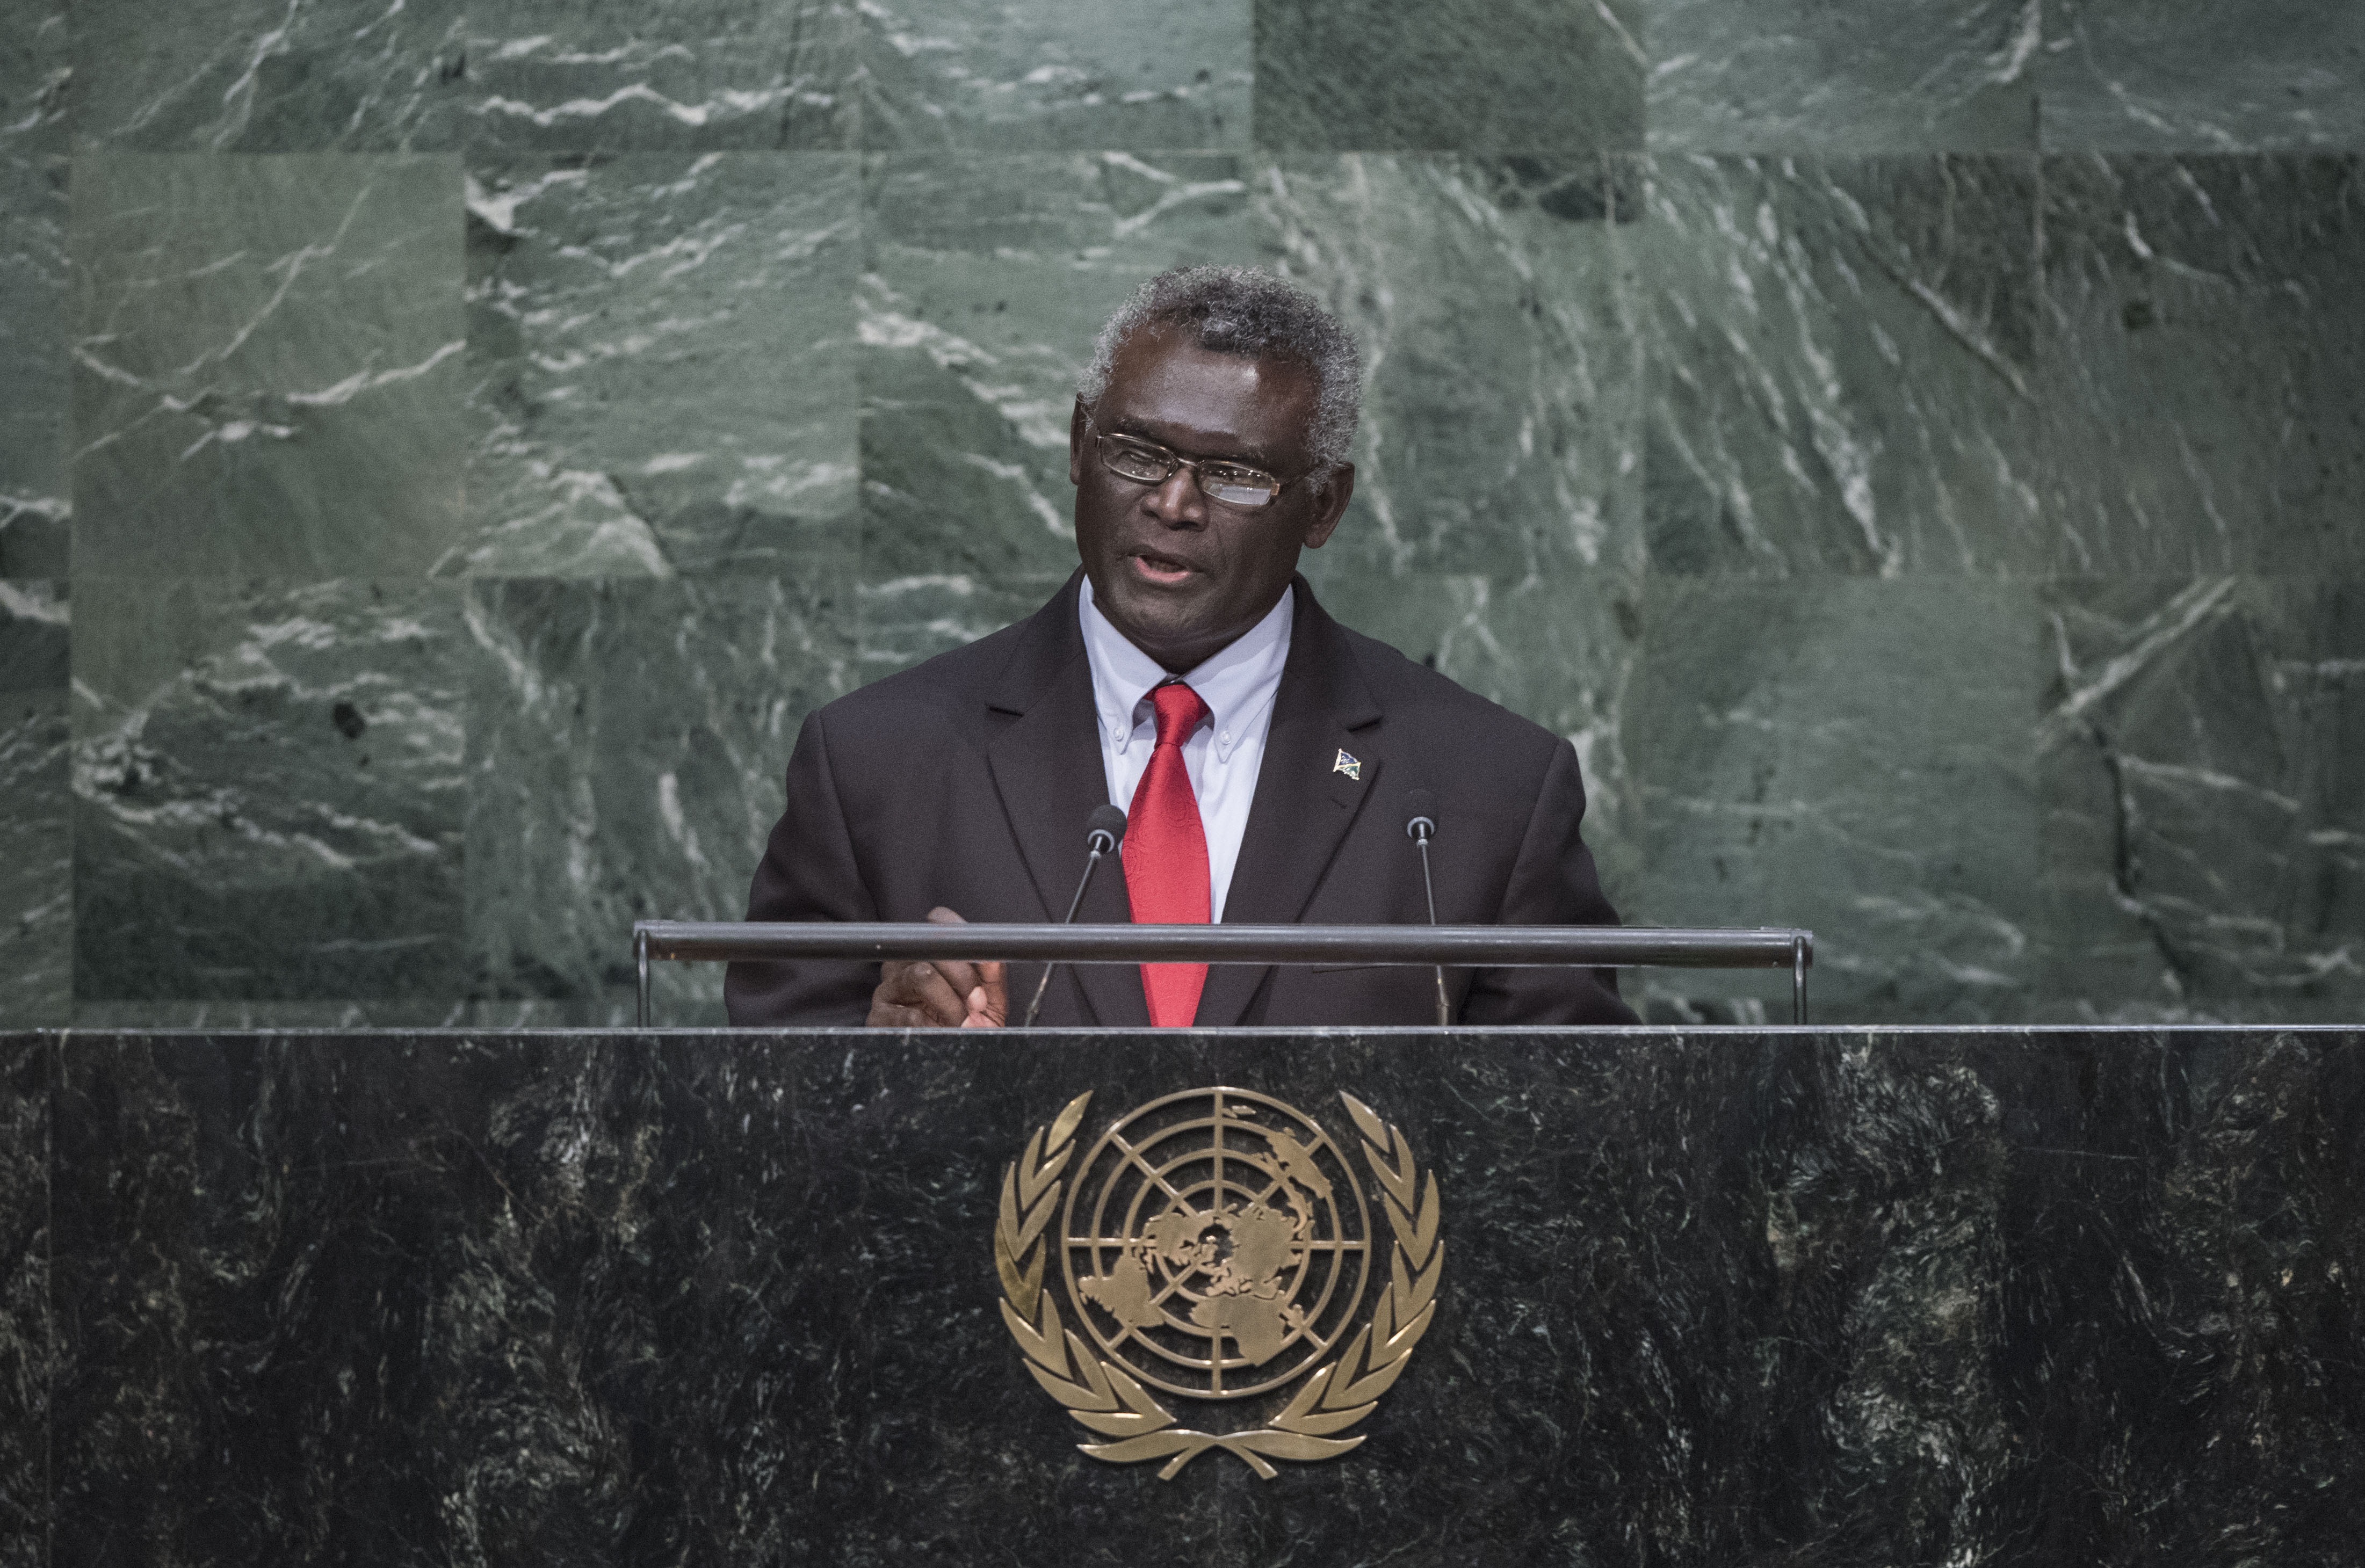 Prime Minister Manasseh Sogavare of the Solomon Islands (photo credit: United Nations Photo/flickr)